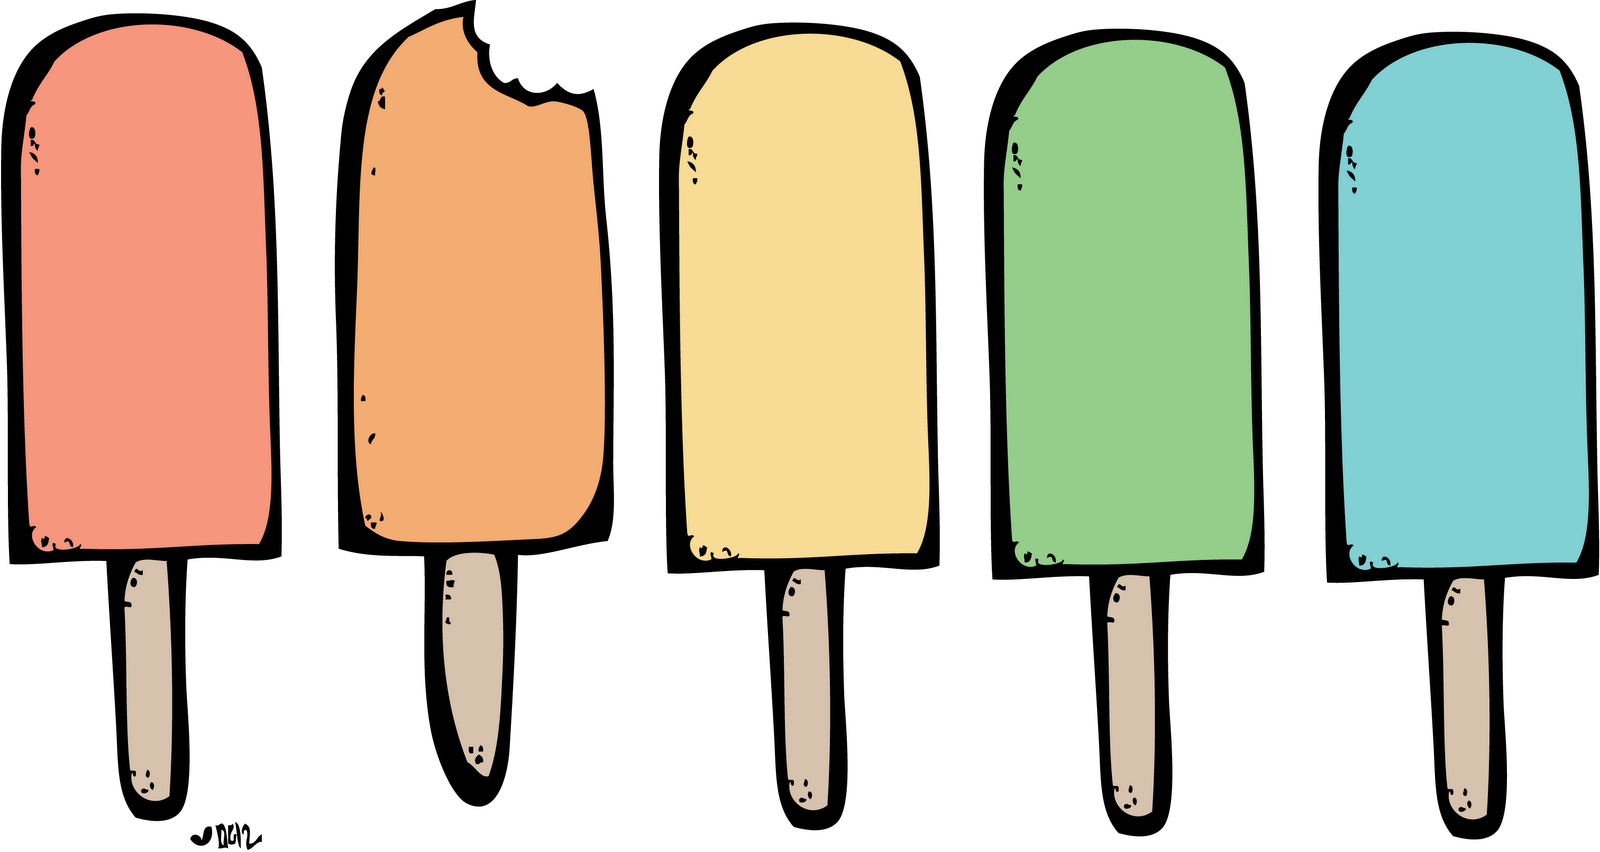 clipart popsicle clipart image 21457 high five board ideas rh pinterest co uk popsicle clipart free popsicle clipart outline